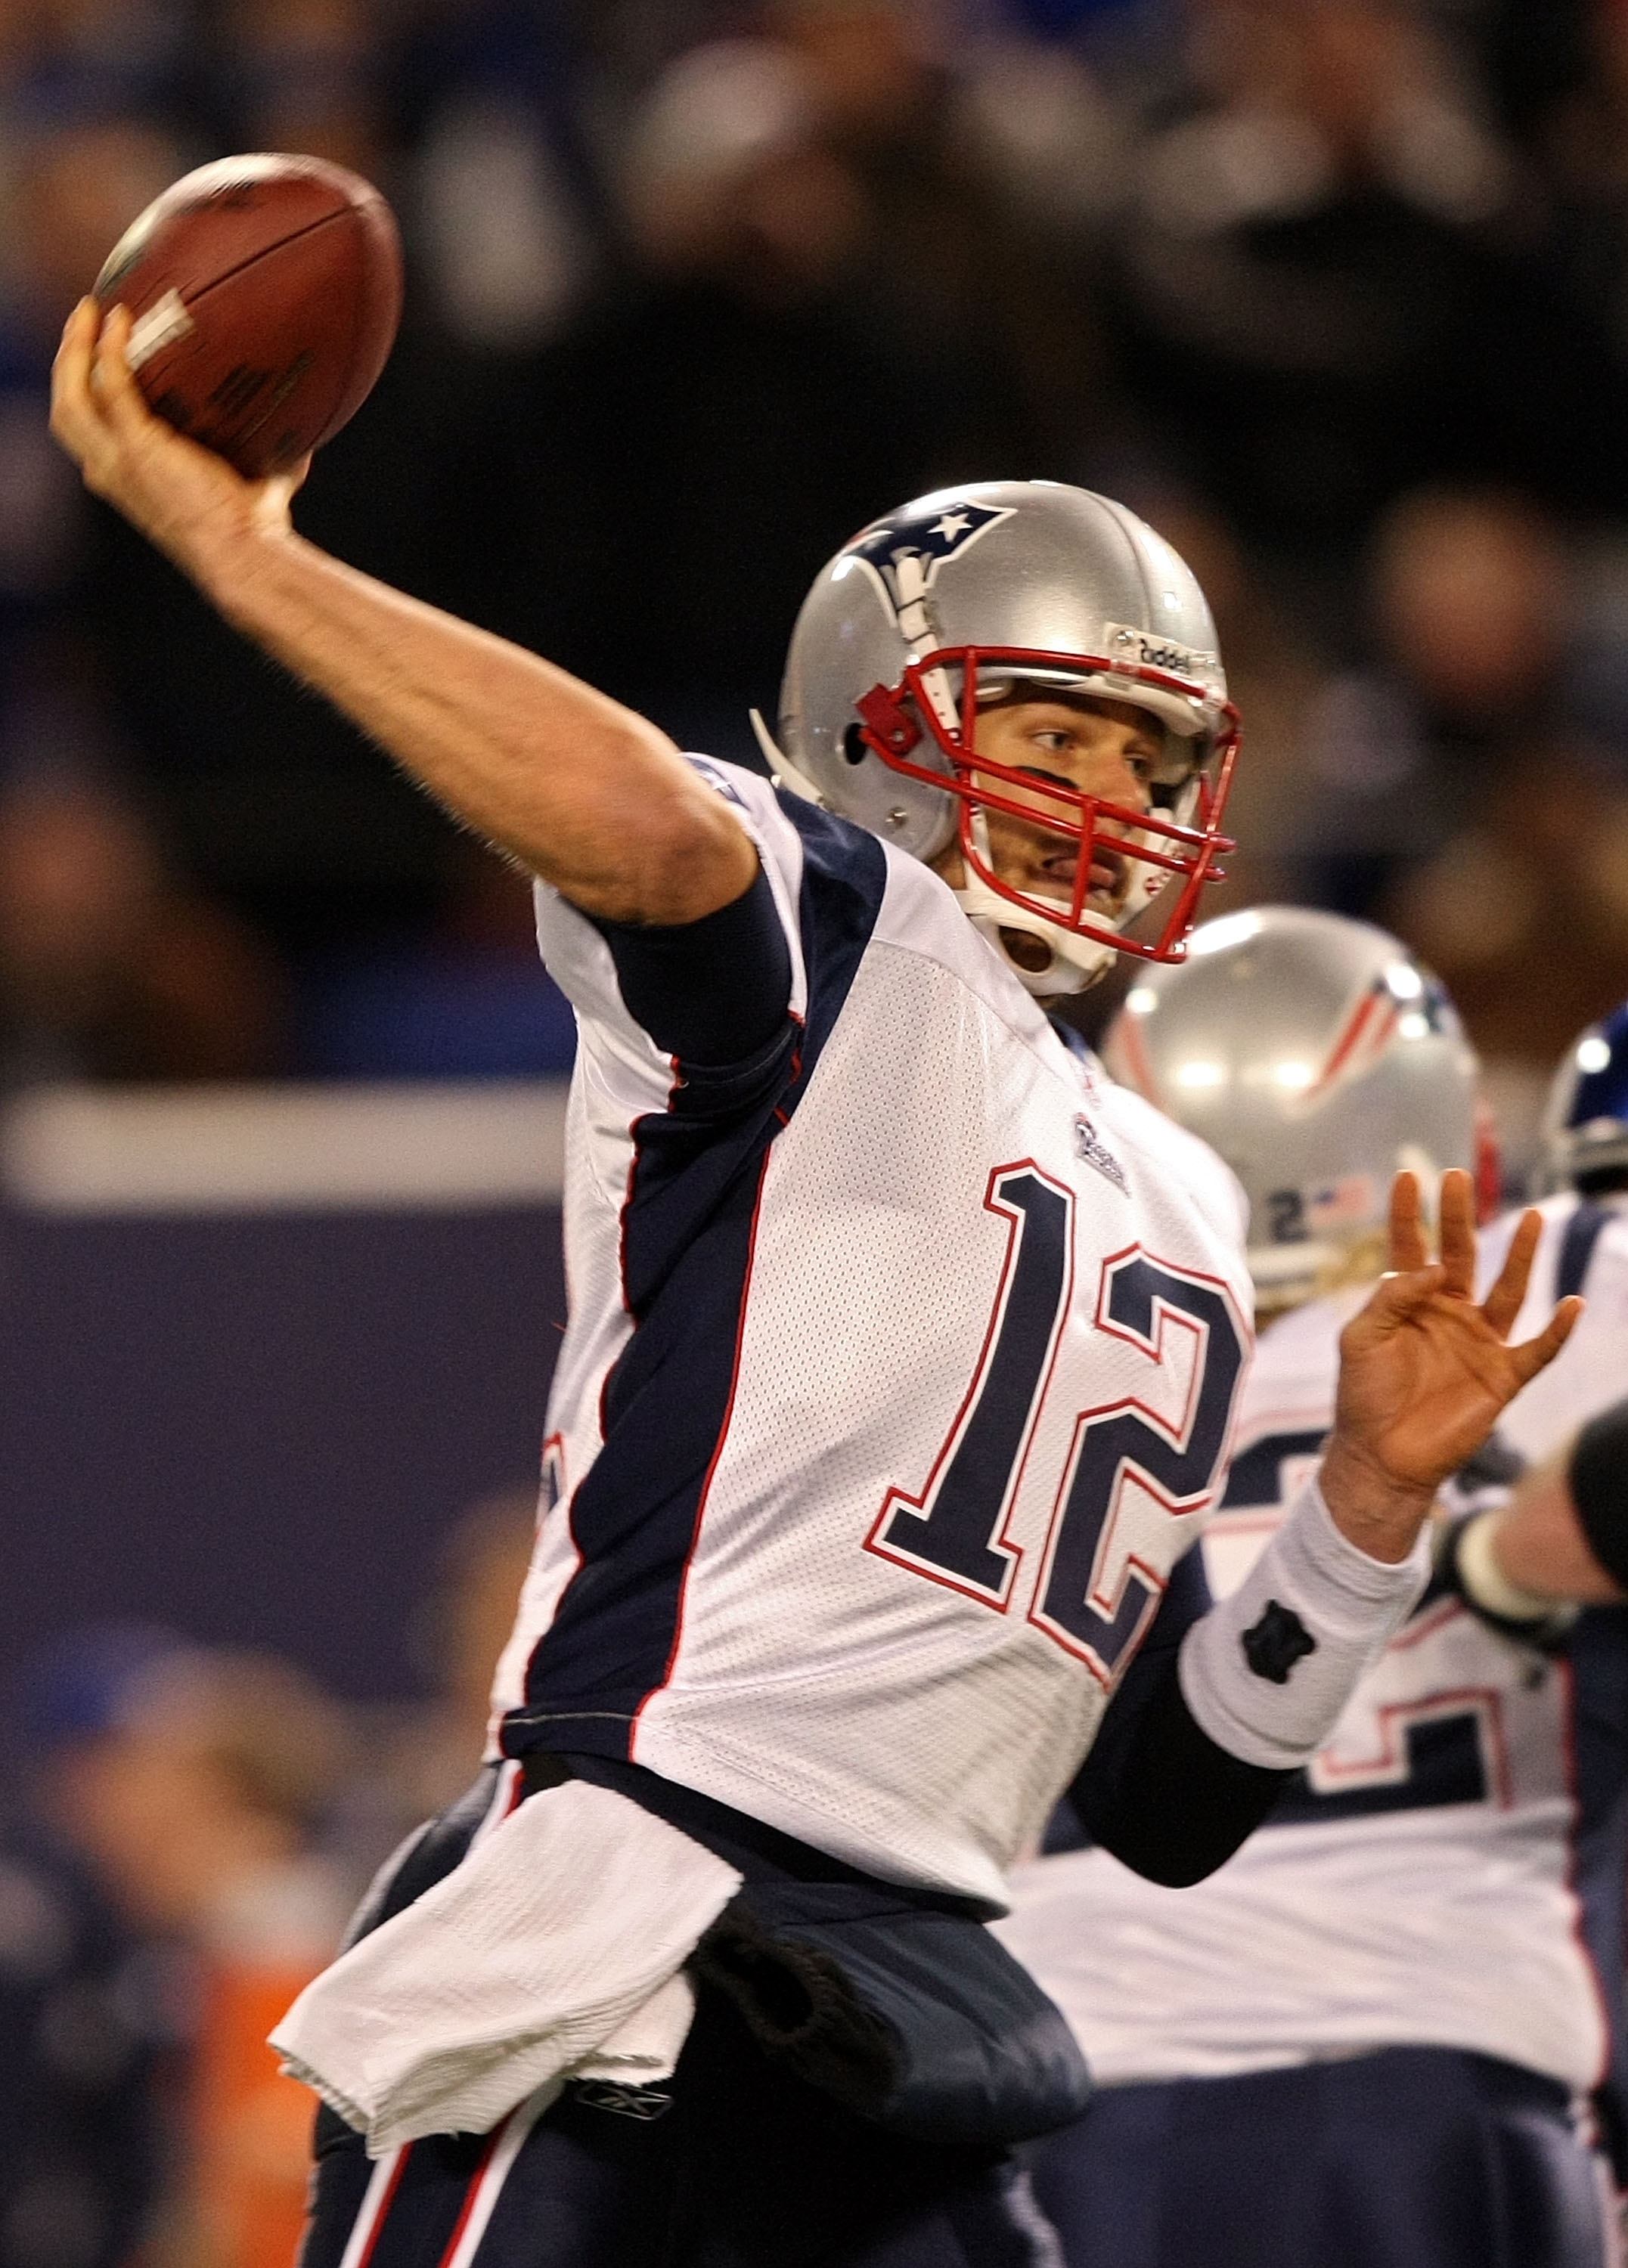 EAST RUTHERFORD, NJ - DECEMBER 29:  Tom Brady #12 and the New England Patriots passes against the New York Giants on December 29, 2007 at Giants Stadium in East Rutherford, New Jersey.  (Photo by Al Bello/Getty Images)